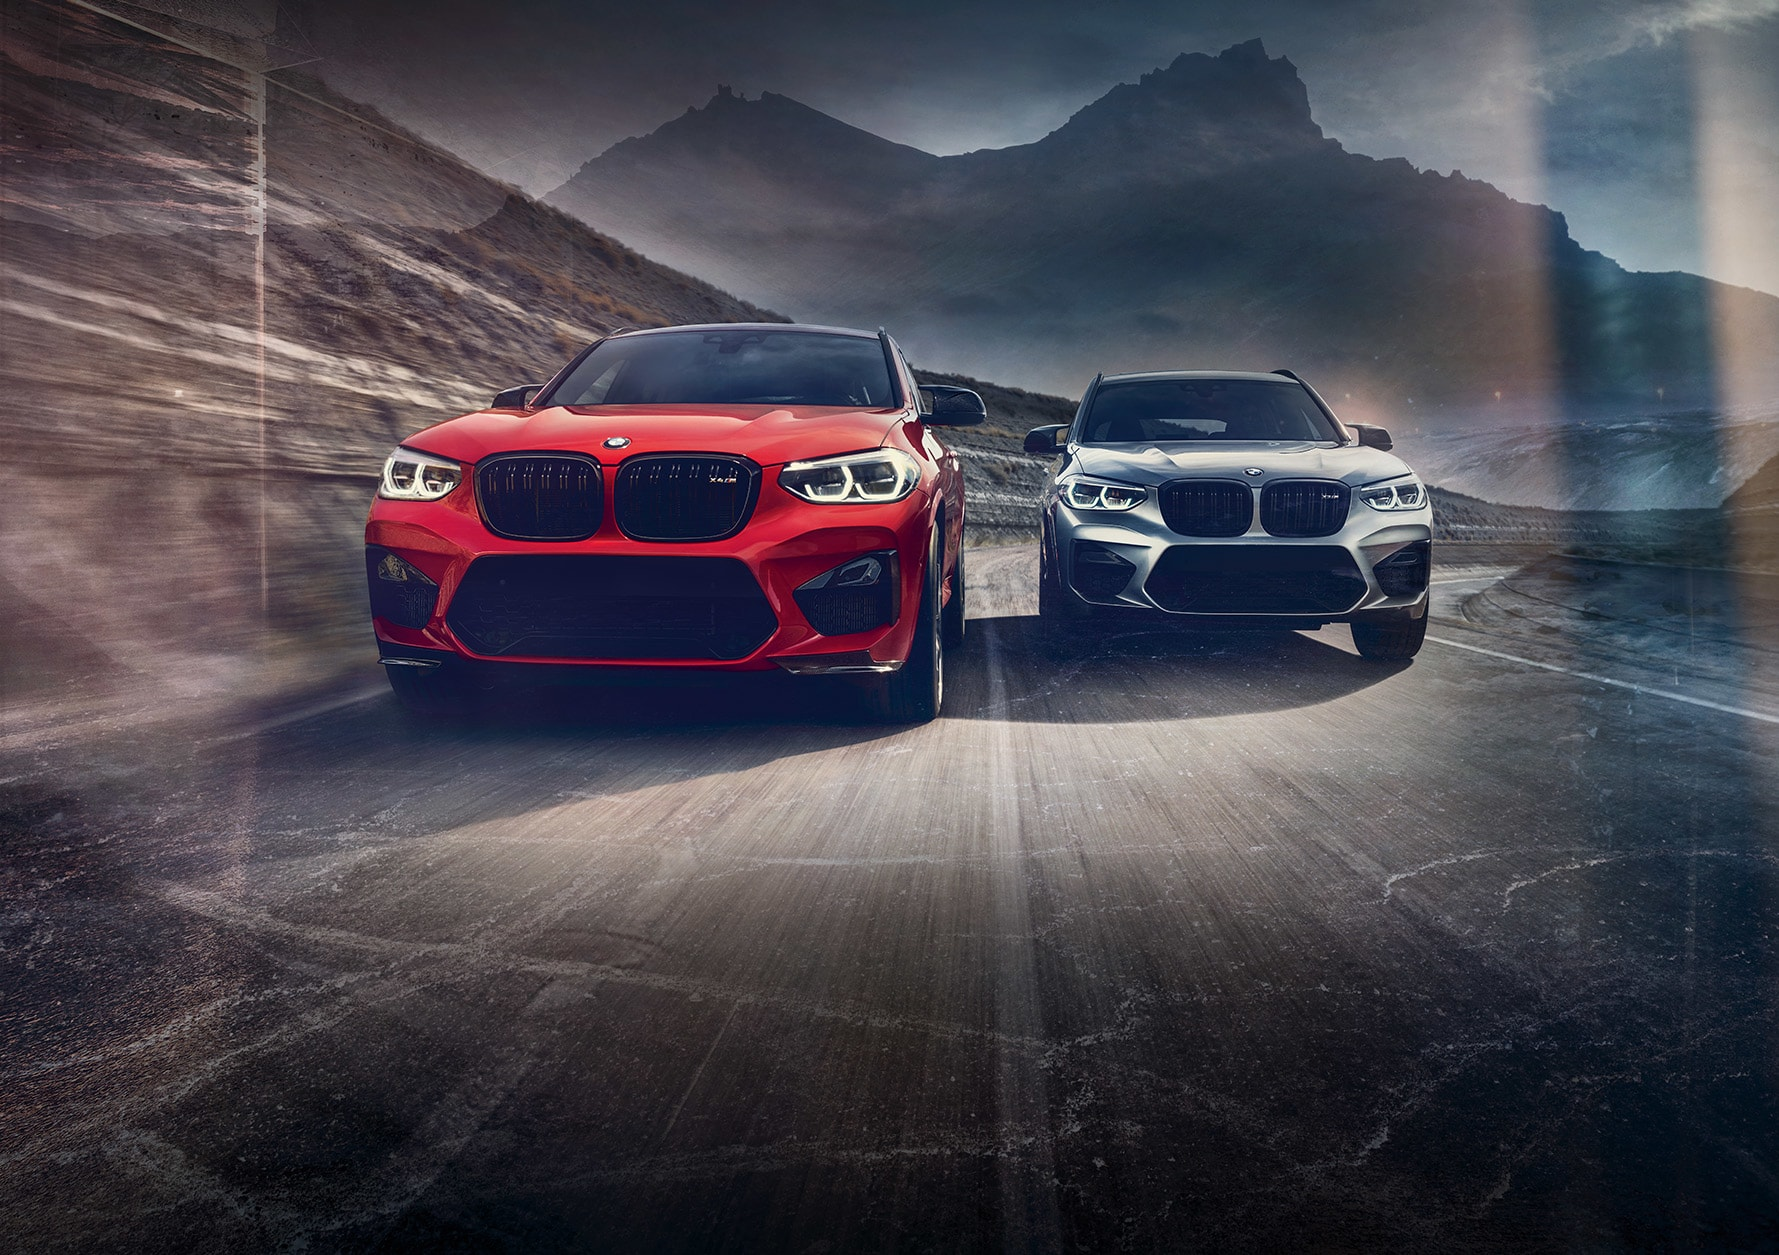 2020 BMW X4 M and X3 M driving on the road 2000